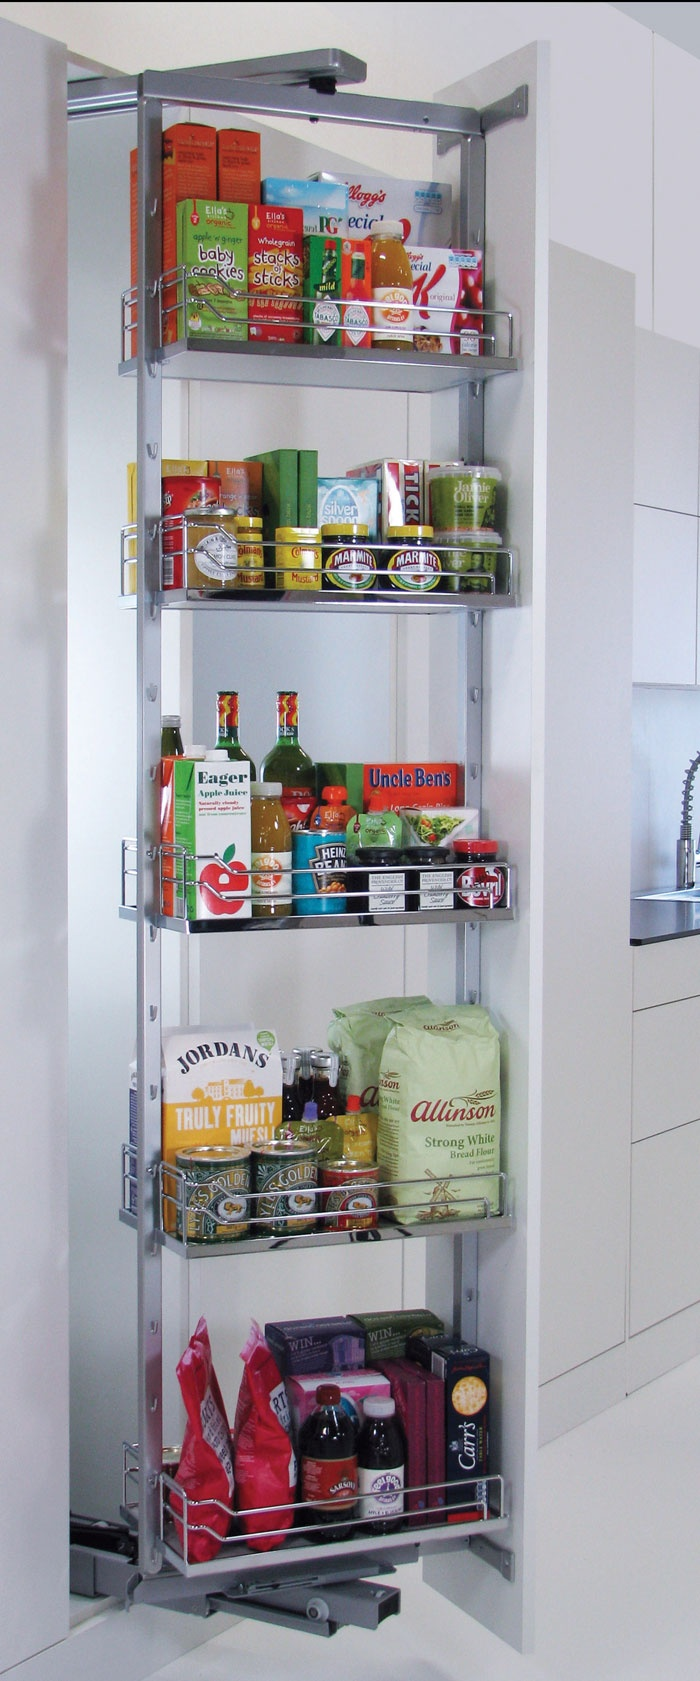 21 best pull outs images on pinterest kitchen home and kitchen kitchen storage